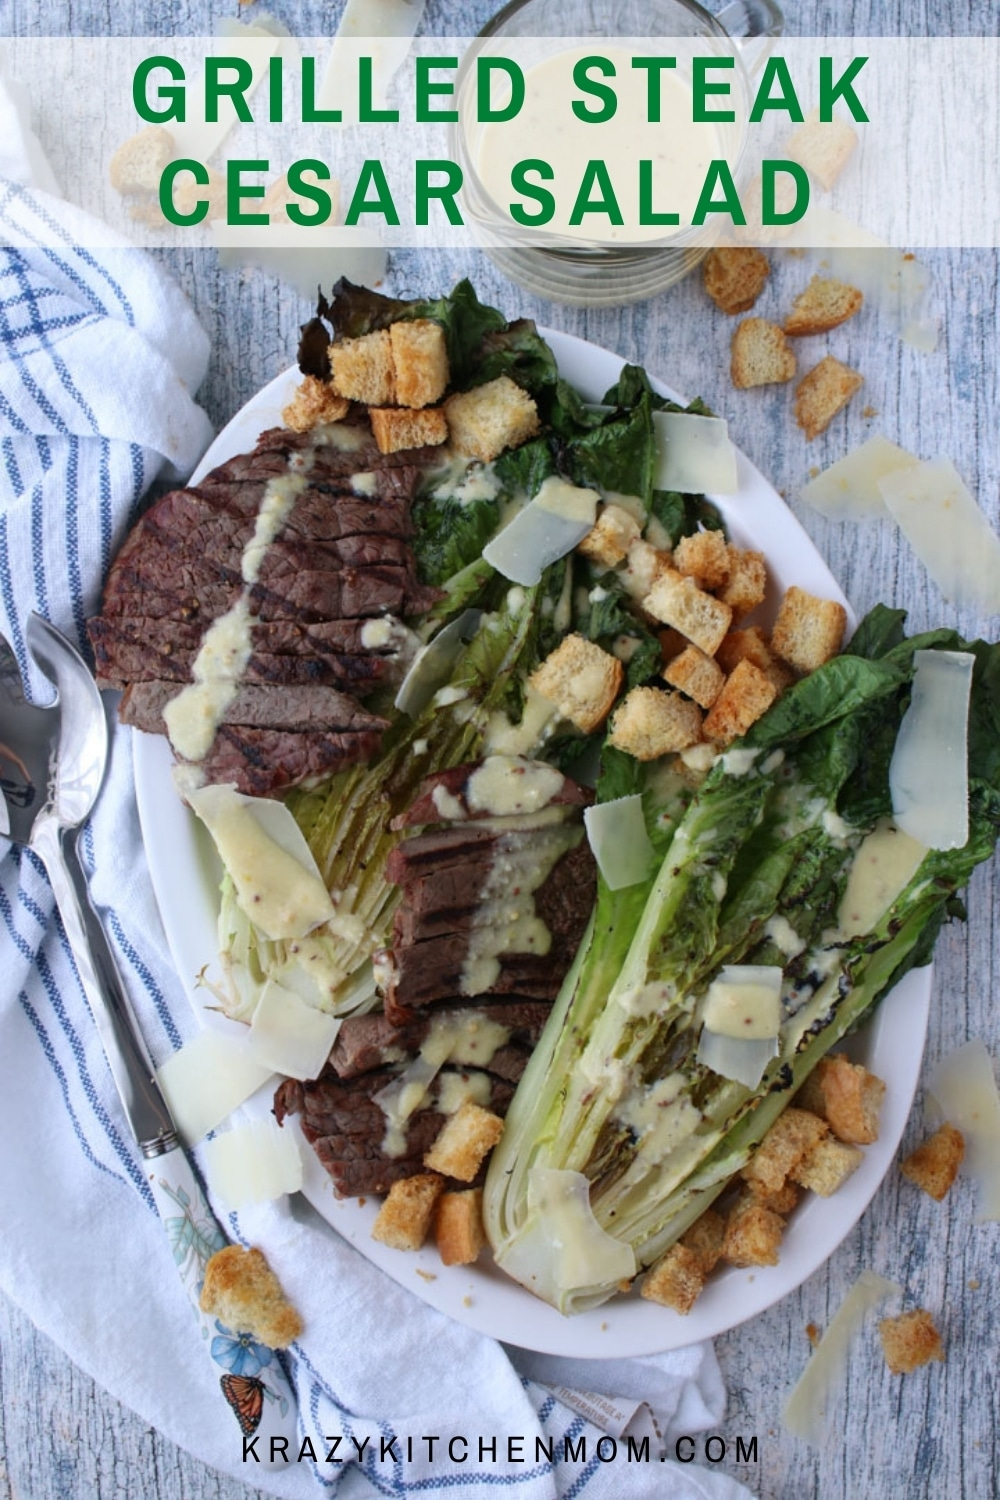 Turn a simple Cesar salad into an impressive dinner plater by using your BBQ grill or a simple stovetop grill pan.  via @krazykitchenmom